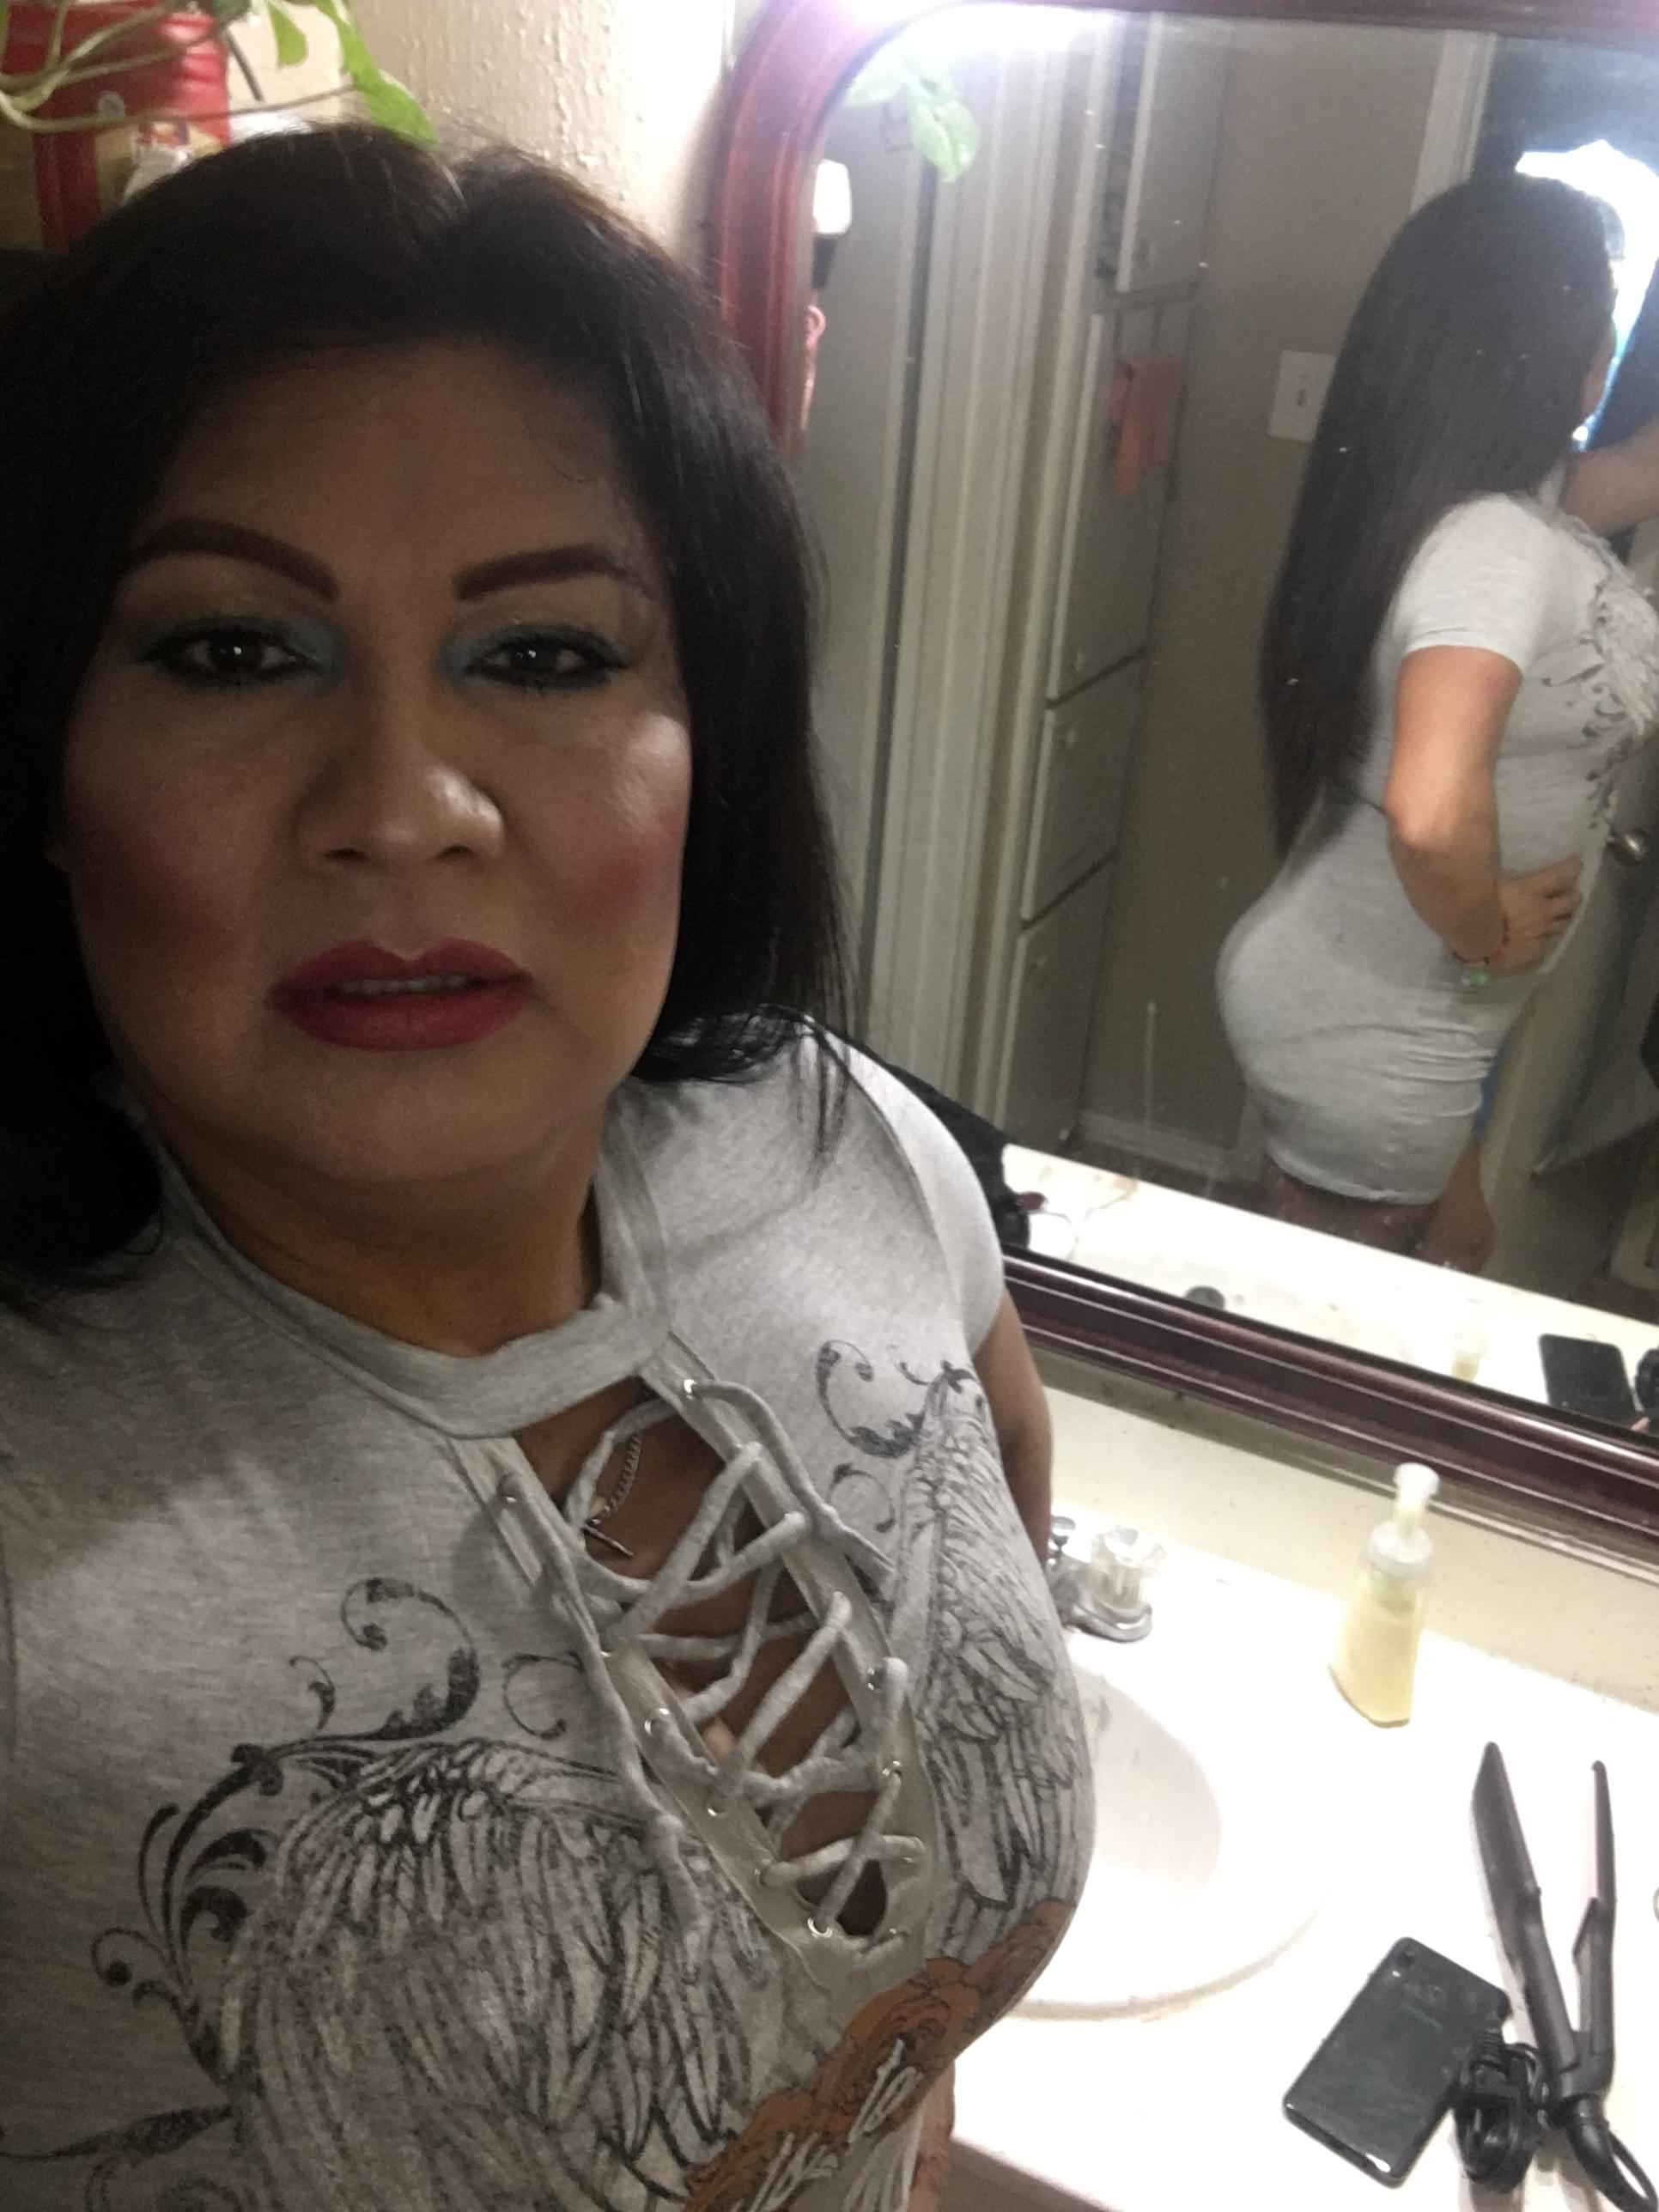 Patzy Profile, Escort in Dallas, 9562021679